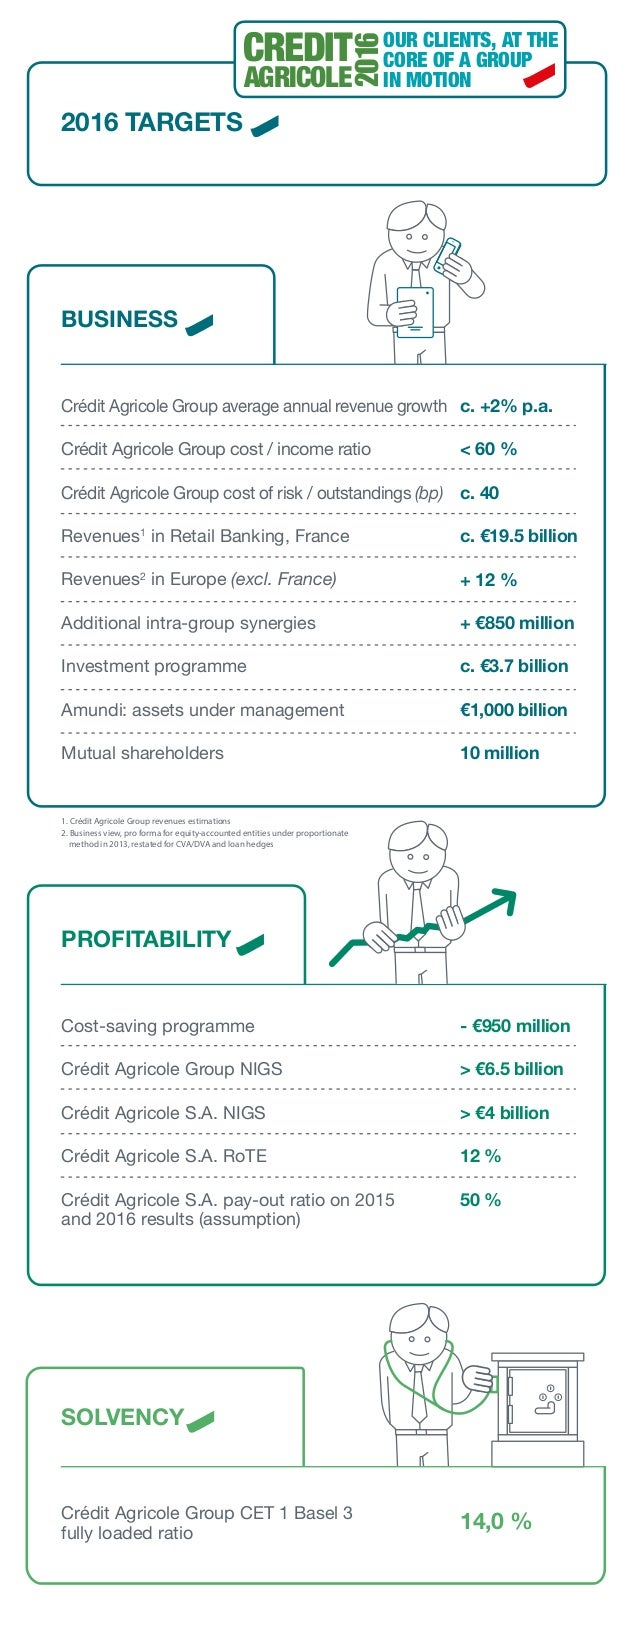 Crédit Agricole Group average annual revenue growth Crédit Agricole Group cost / income ratio Crédit Agricole Group cost o...